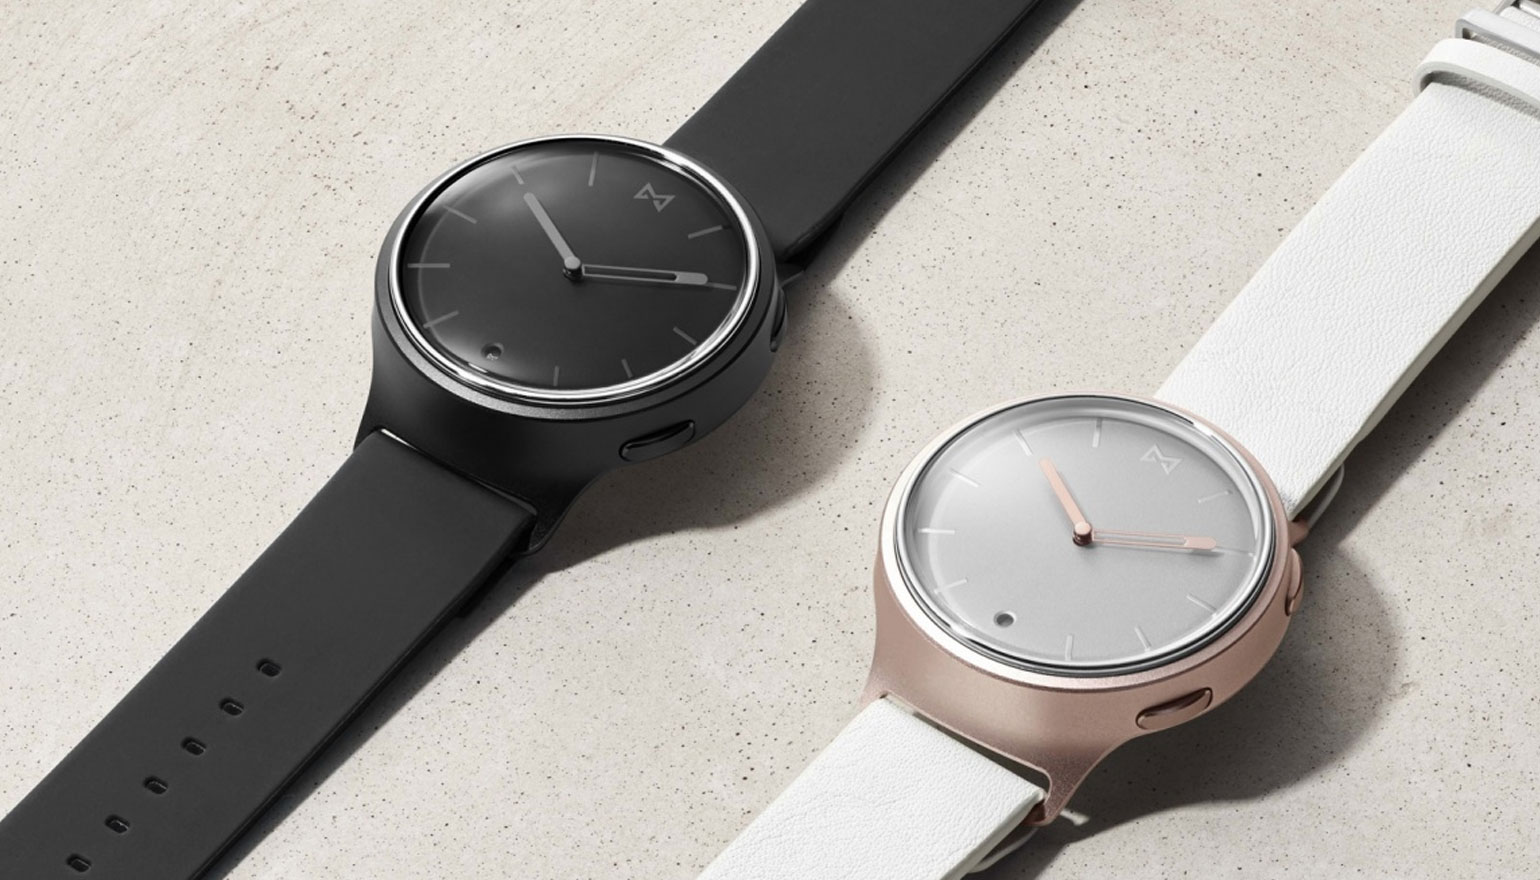 De Misfit Phase is een analoog horloge met basale fitnesstracking